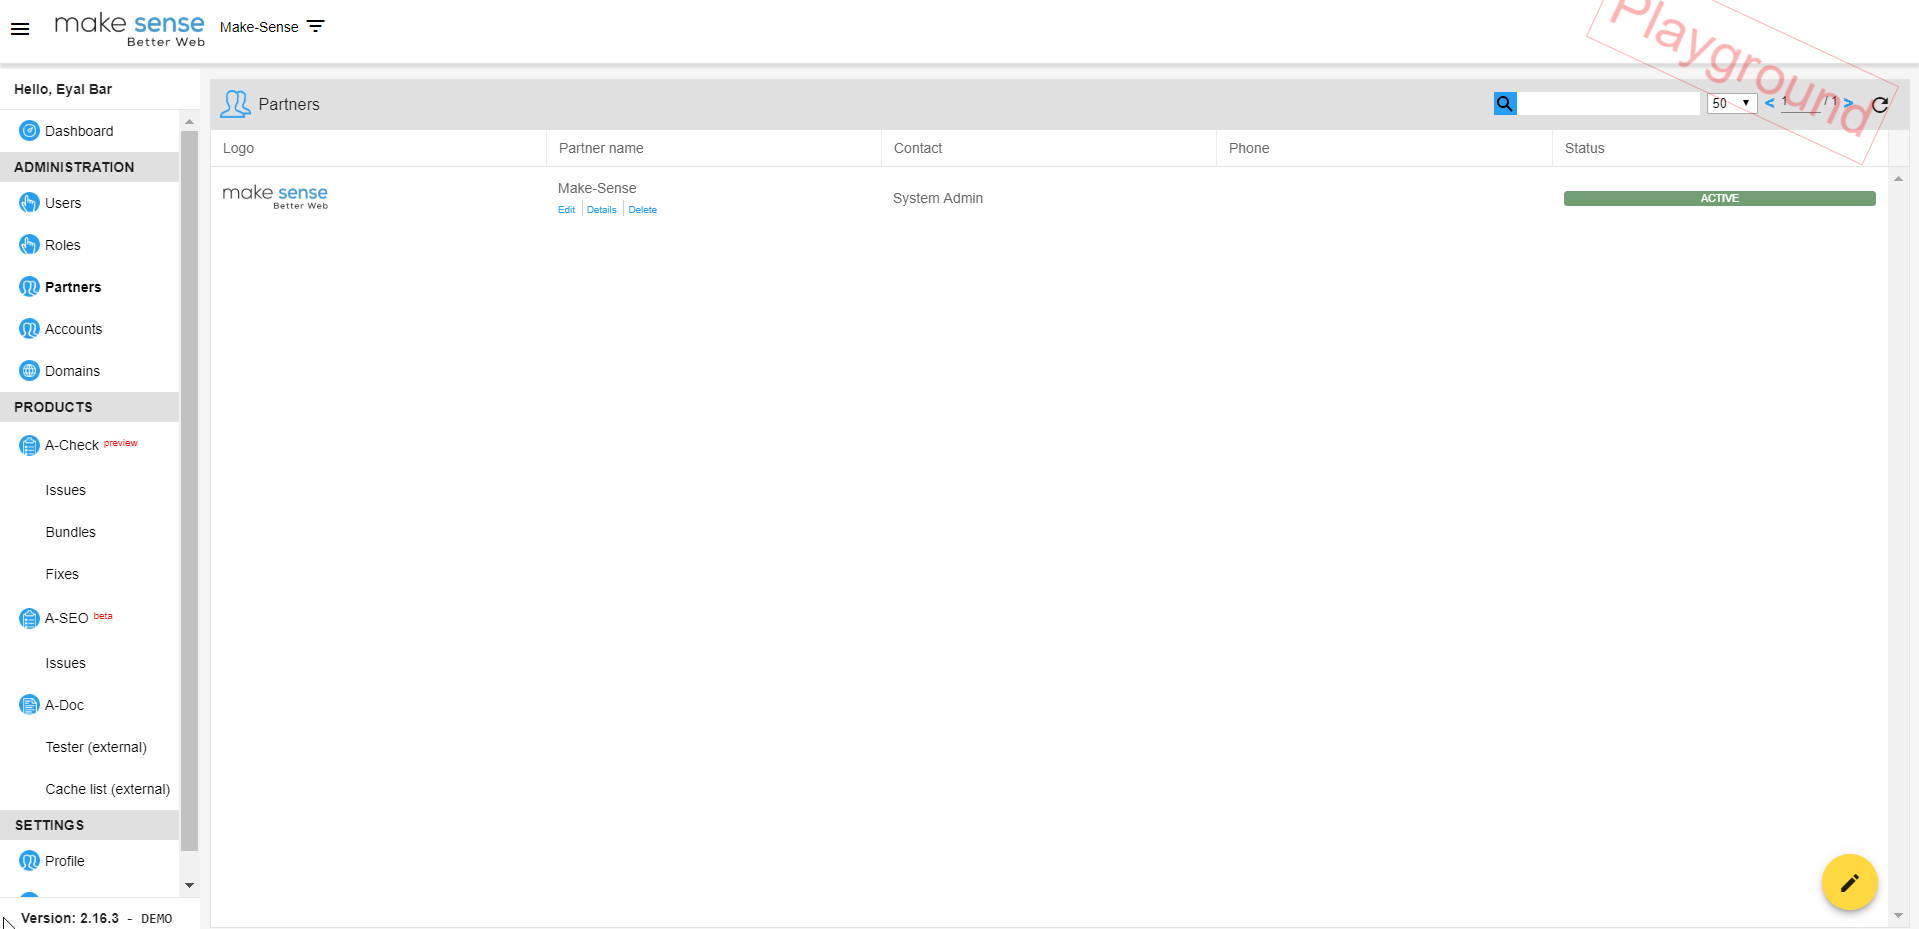 Image of partners section. allows to create new partners, edit and display of existing partners